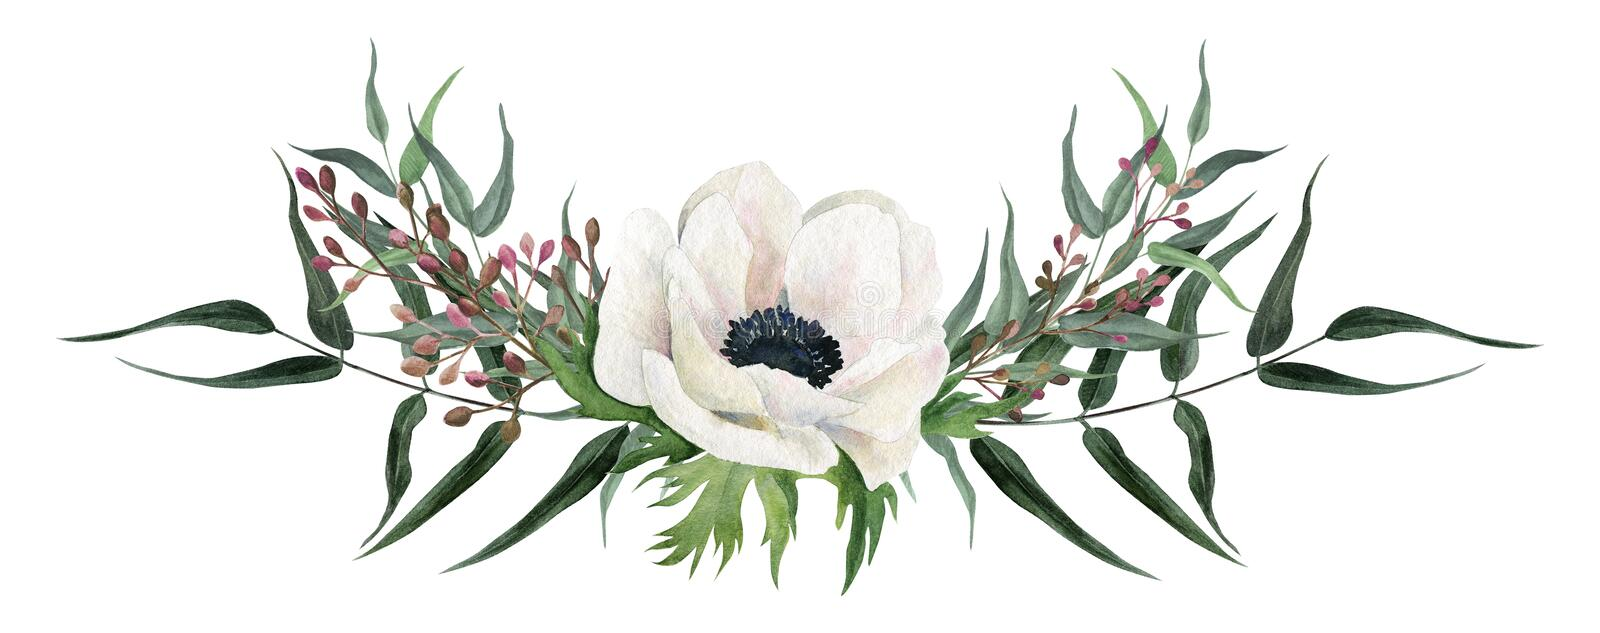 Beautiful watercolor arrangement, hand drawn illustration. Anemones. royalty free illustration